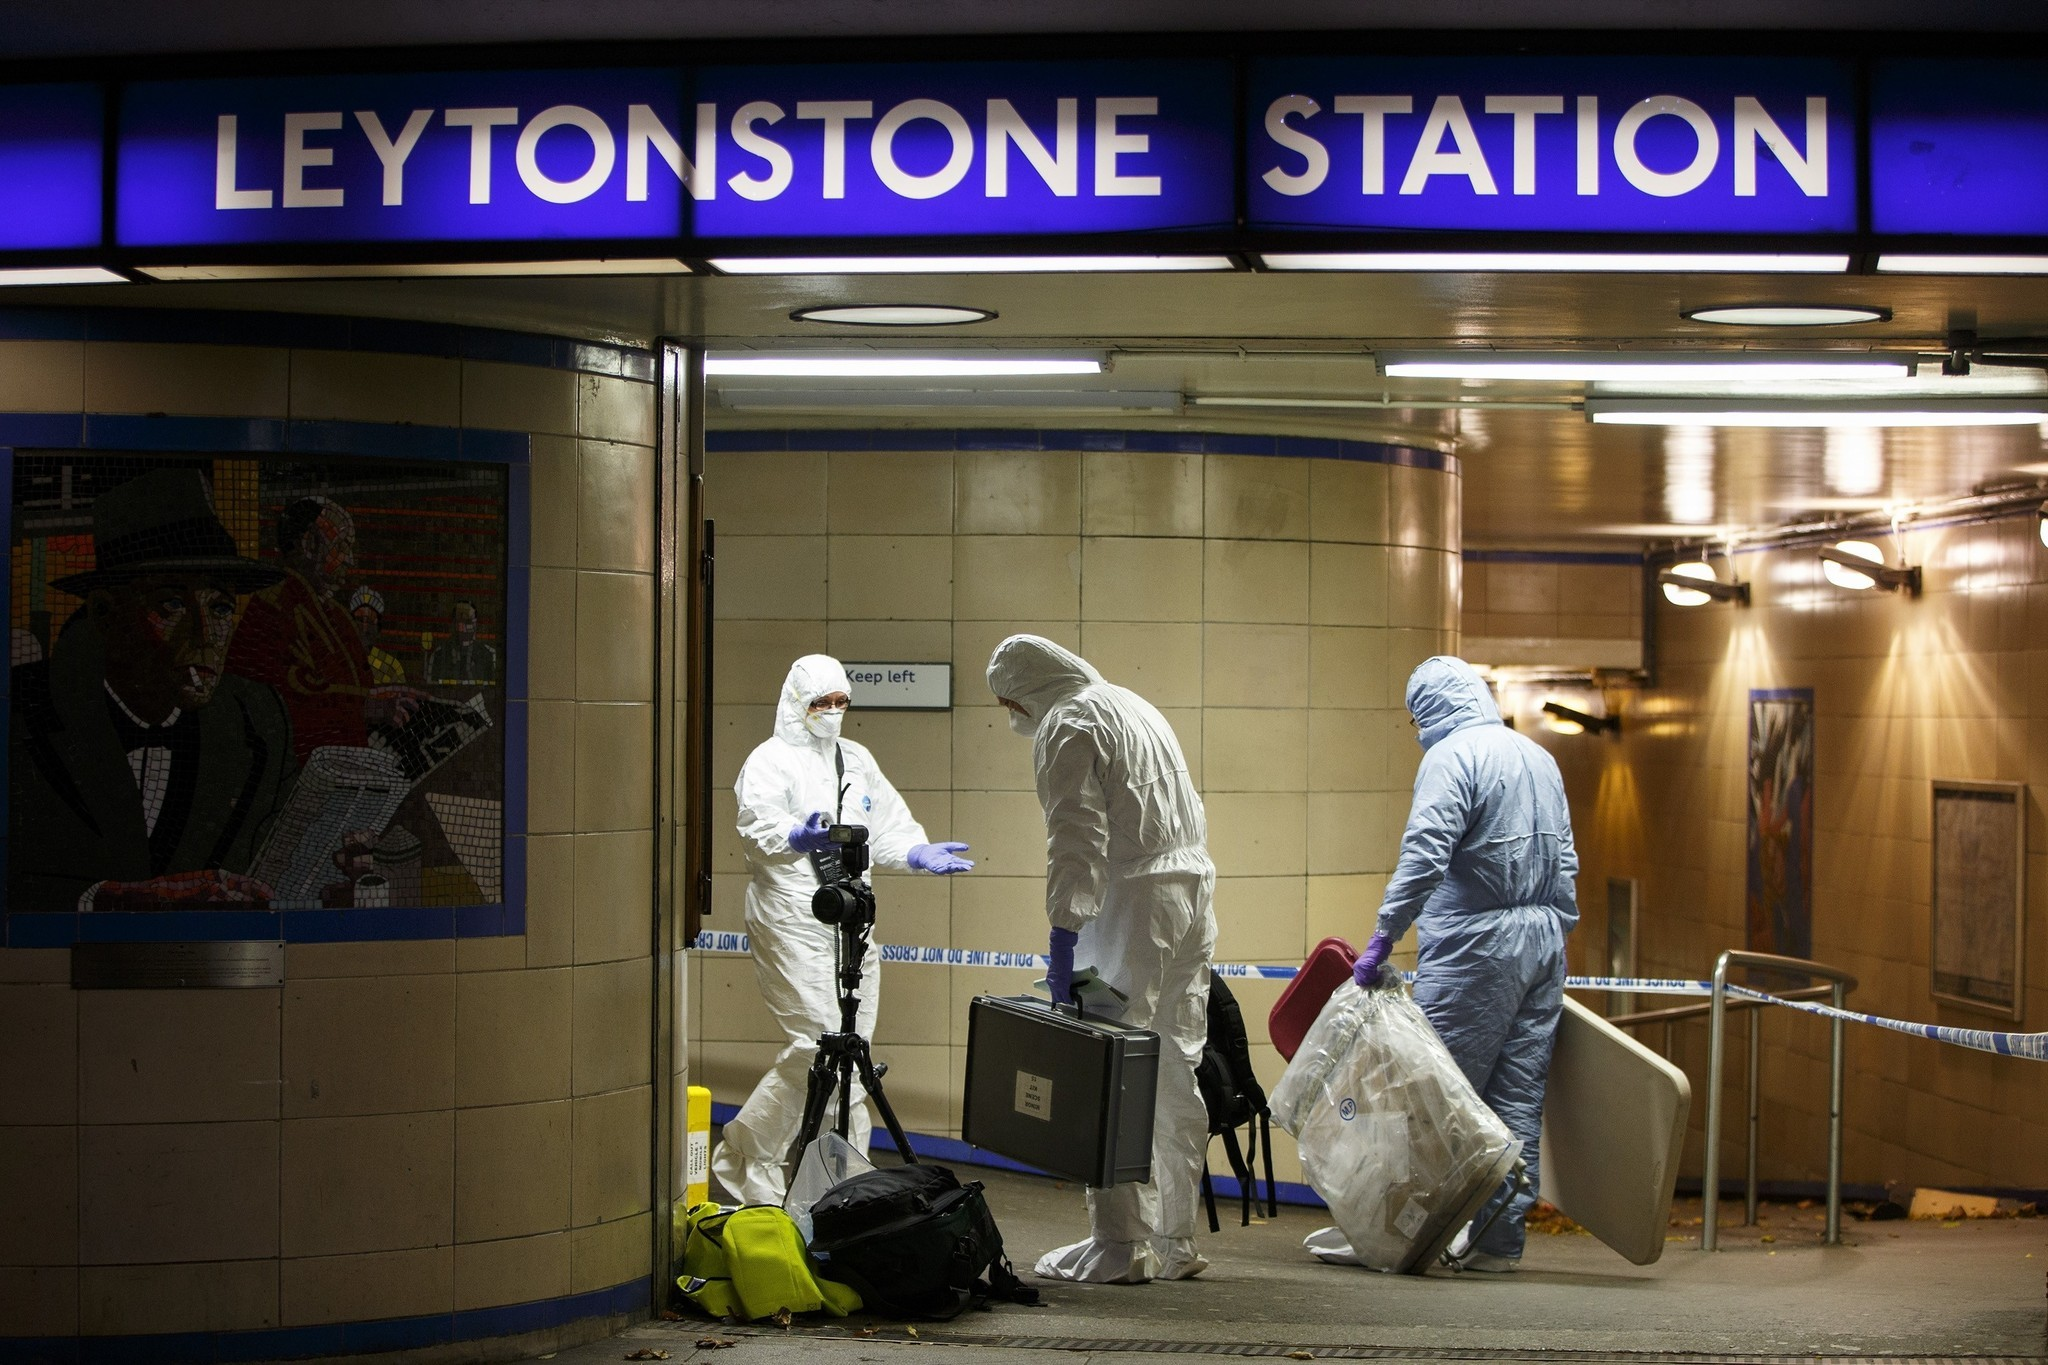 Crime scene investigators collect evidence at Leytonstone tube station in east London.